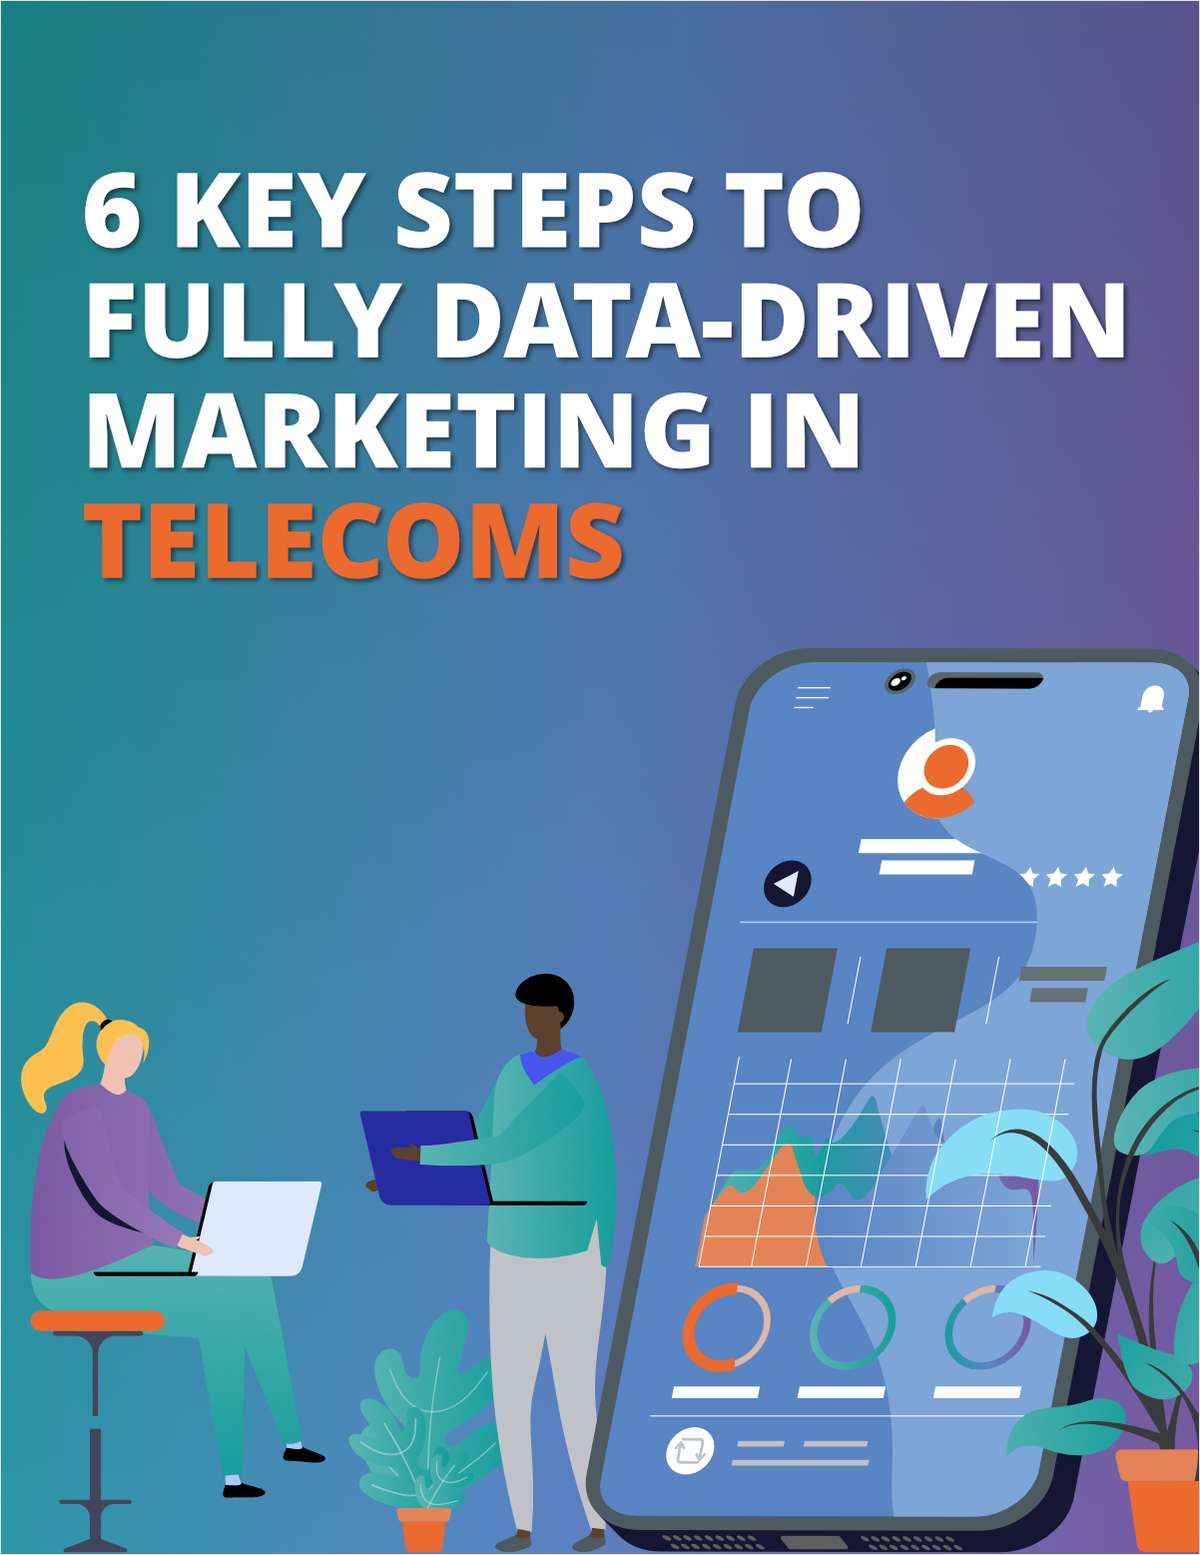 6 Key steps to fully data-driven marketing in telecoms!